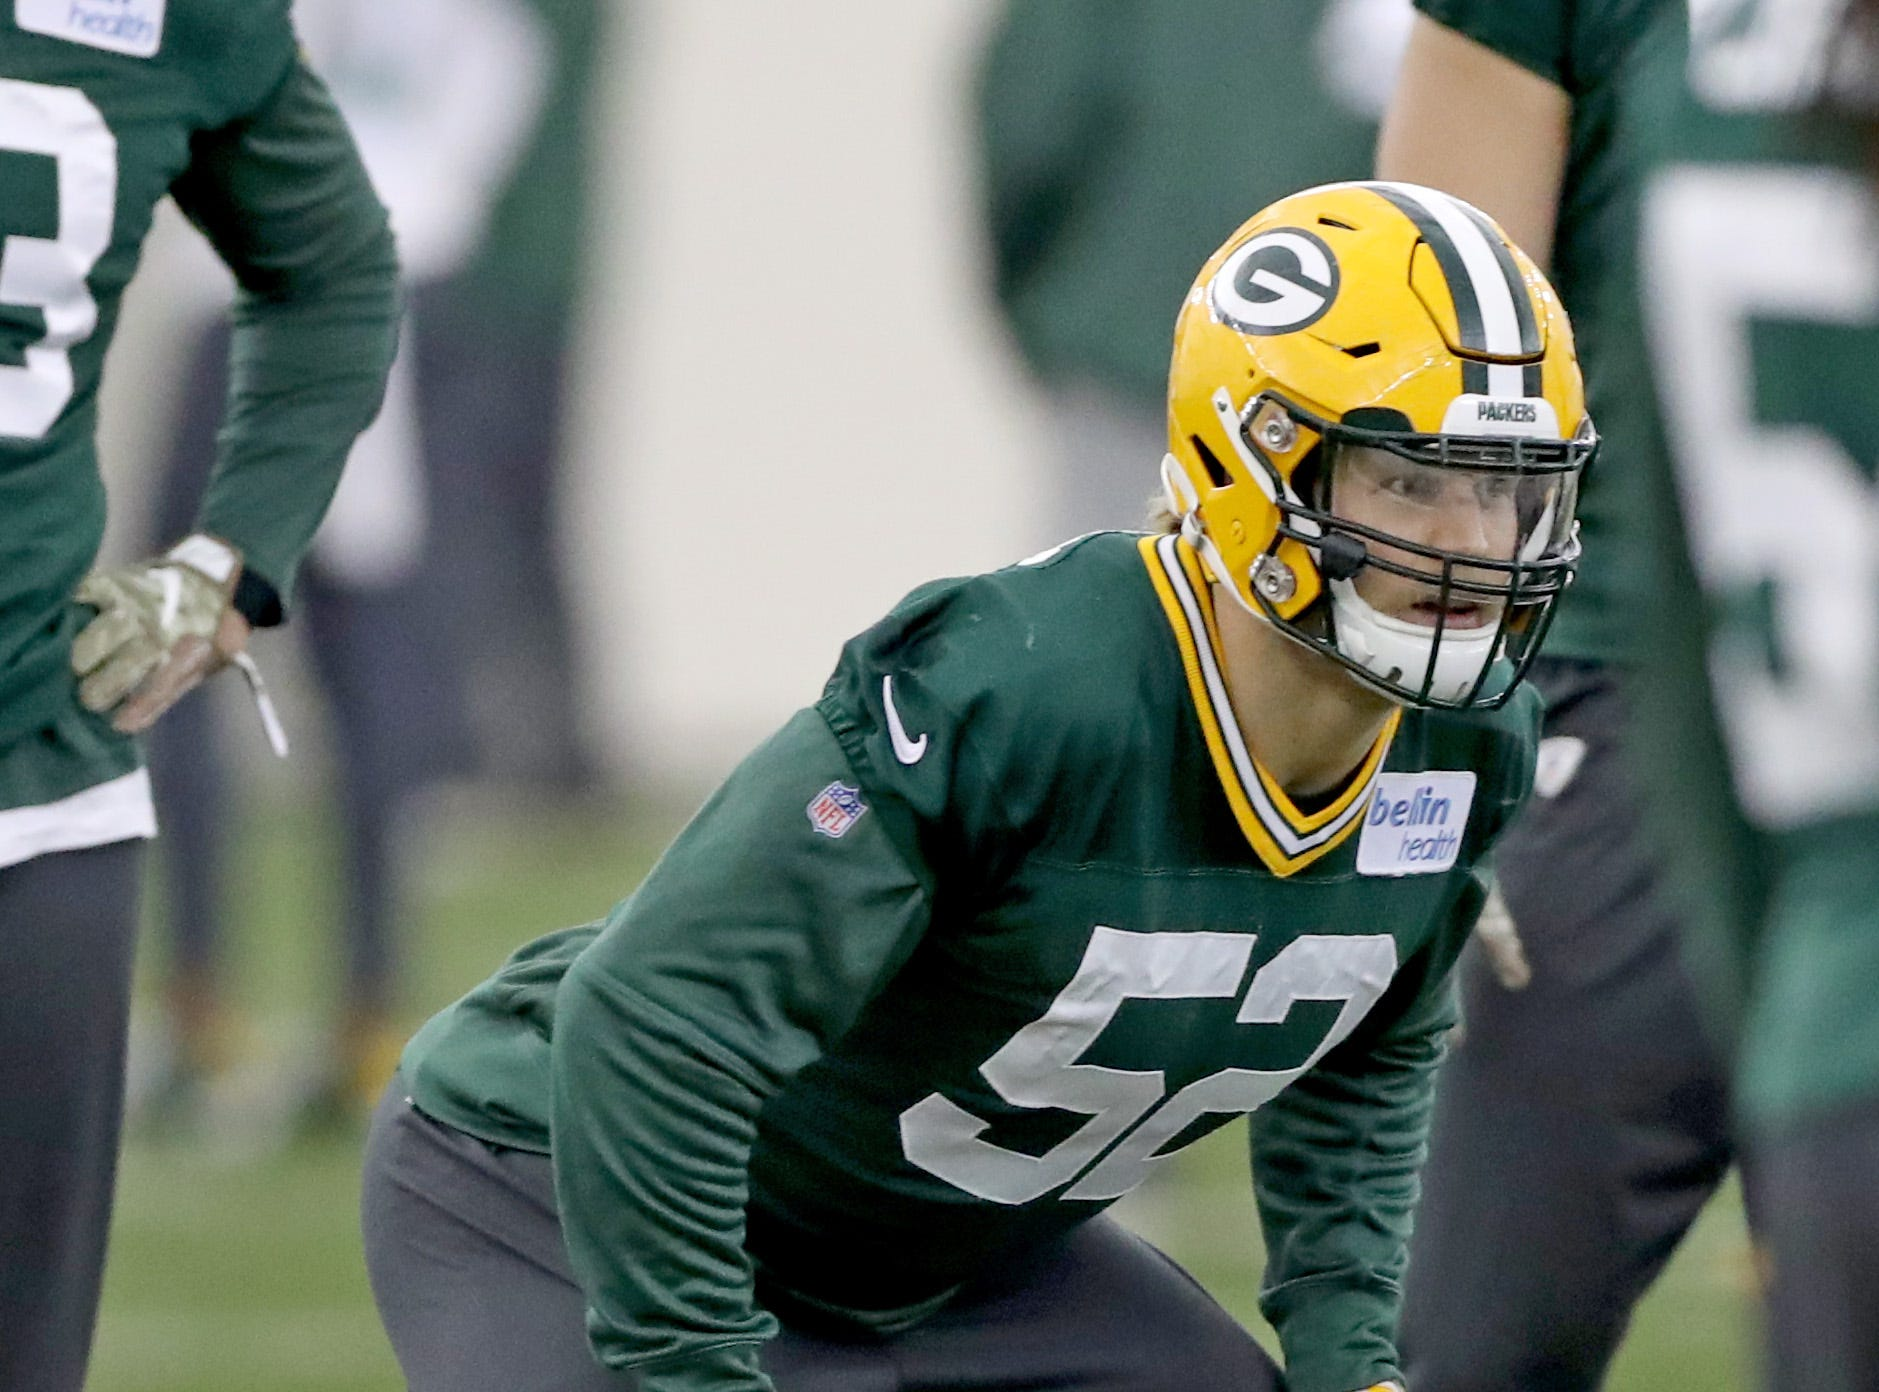 Green Bay Packers outside linebacker Clay Matthews (52) during practice Wednesday, November 21, 2018 inside the Don Hutson Center in Ashwaubenon, Wis.